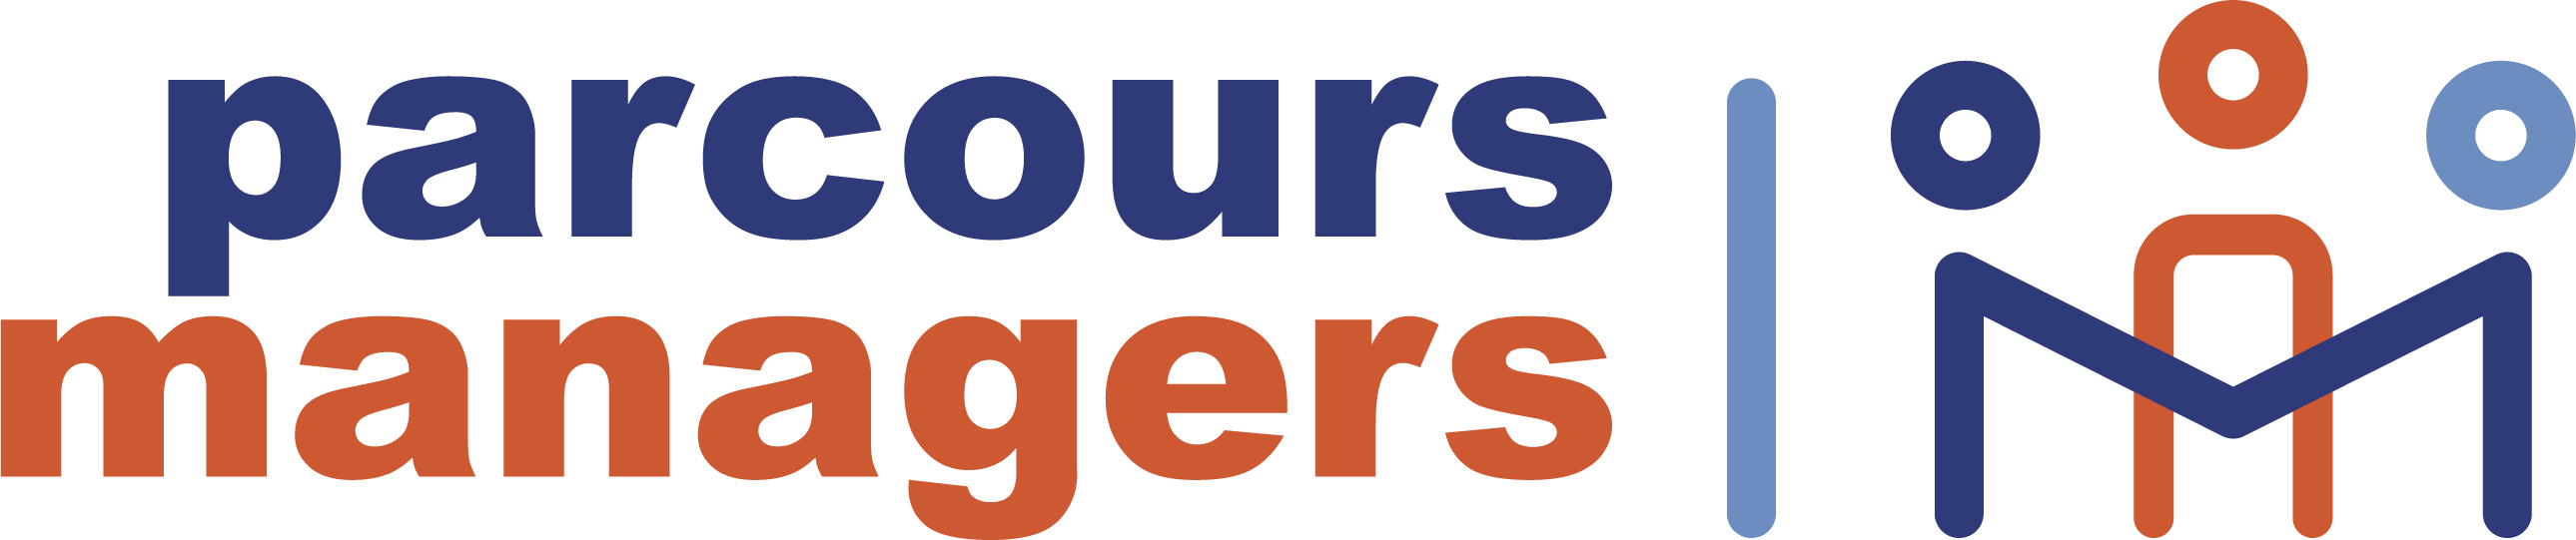 Logo_ParcoursManagers_RVB Image